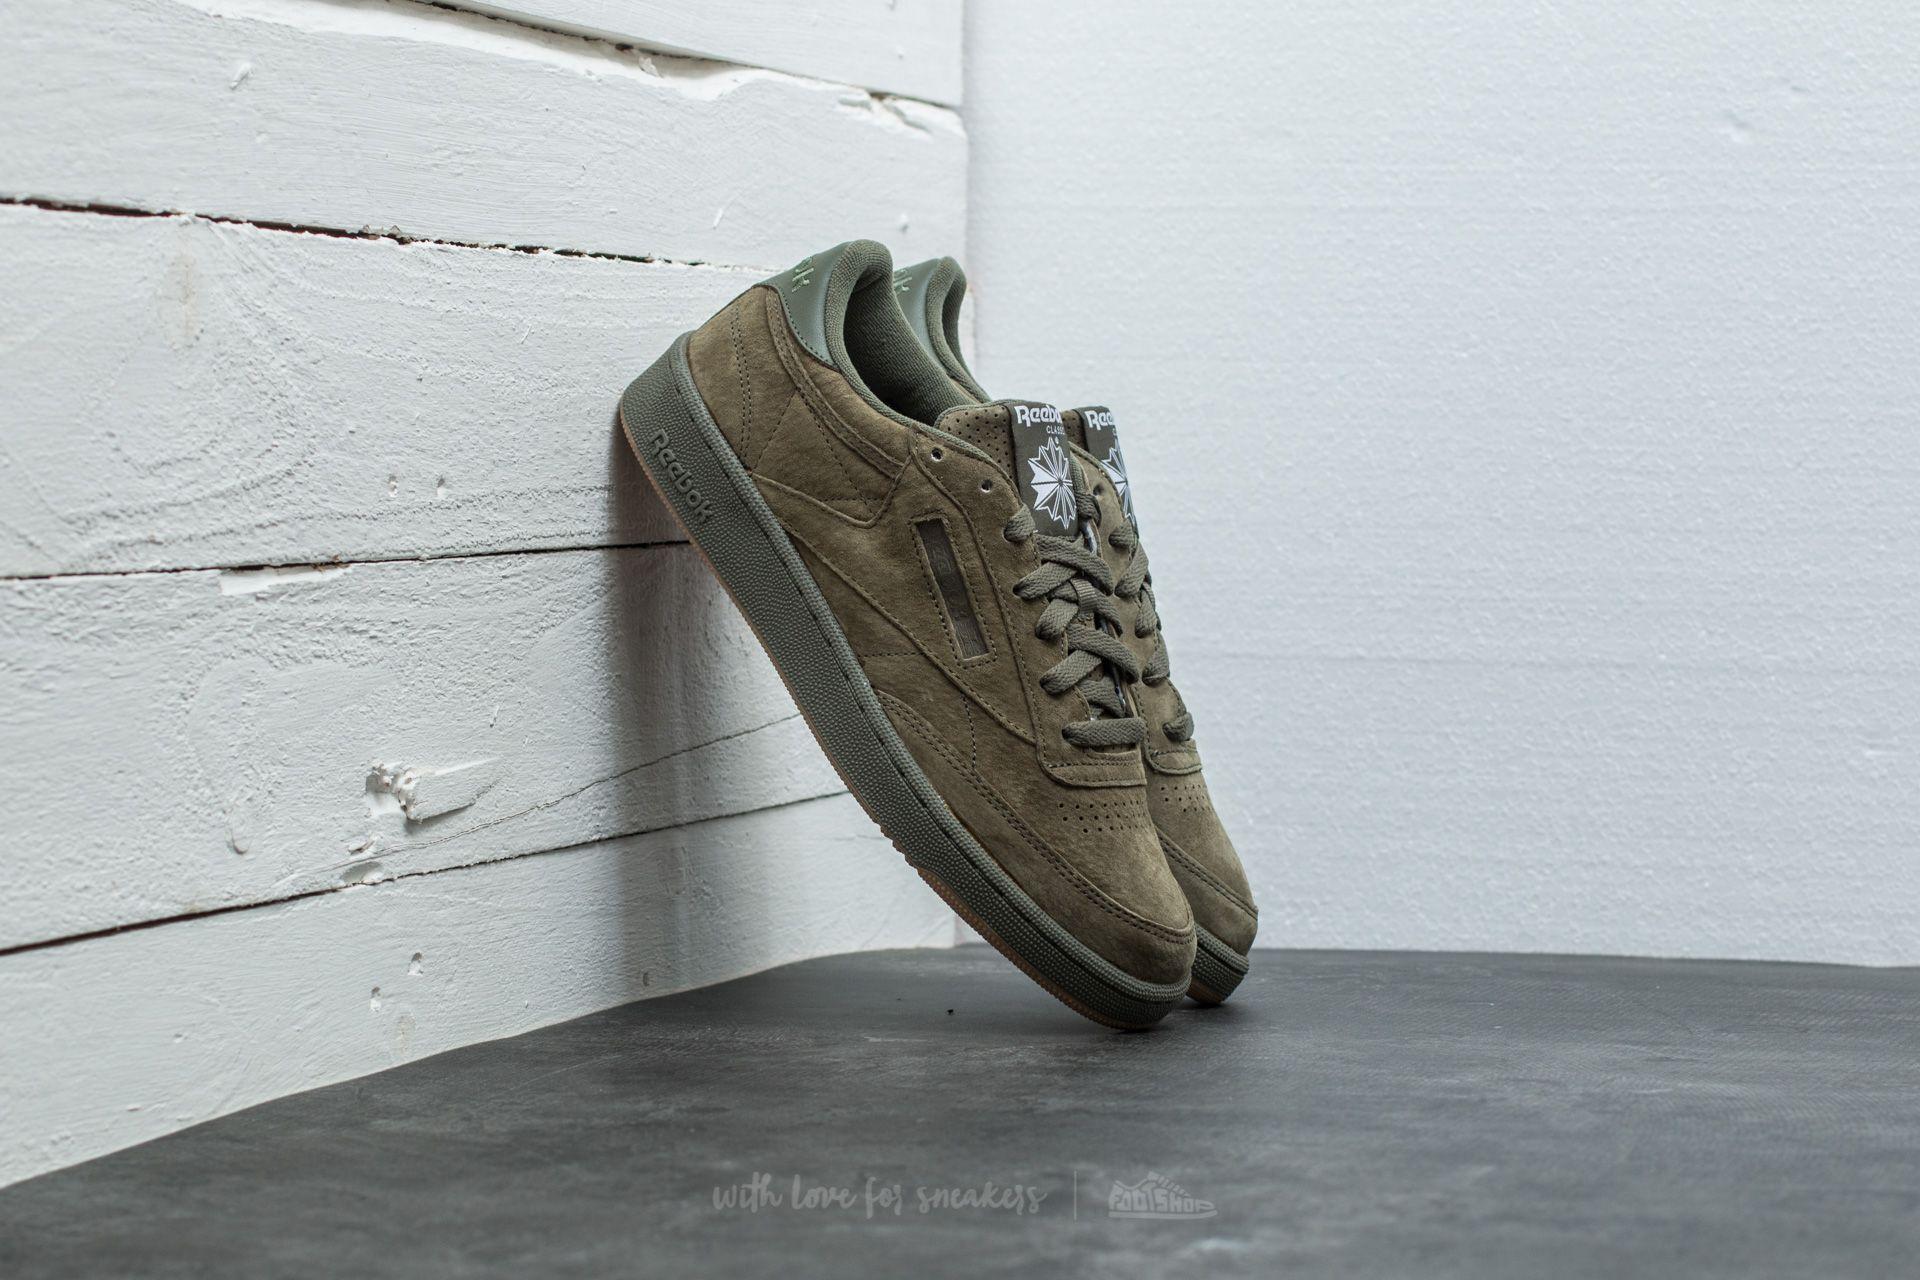 acd1b610ecb Reebok Club C 85 Seasonal Gum Hunter Green/ White-Gum | Footshop